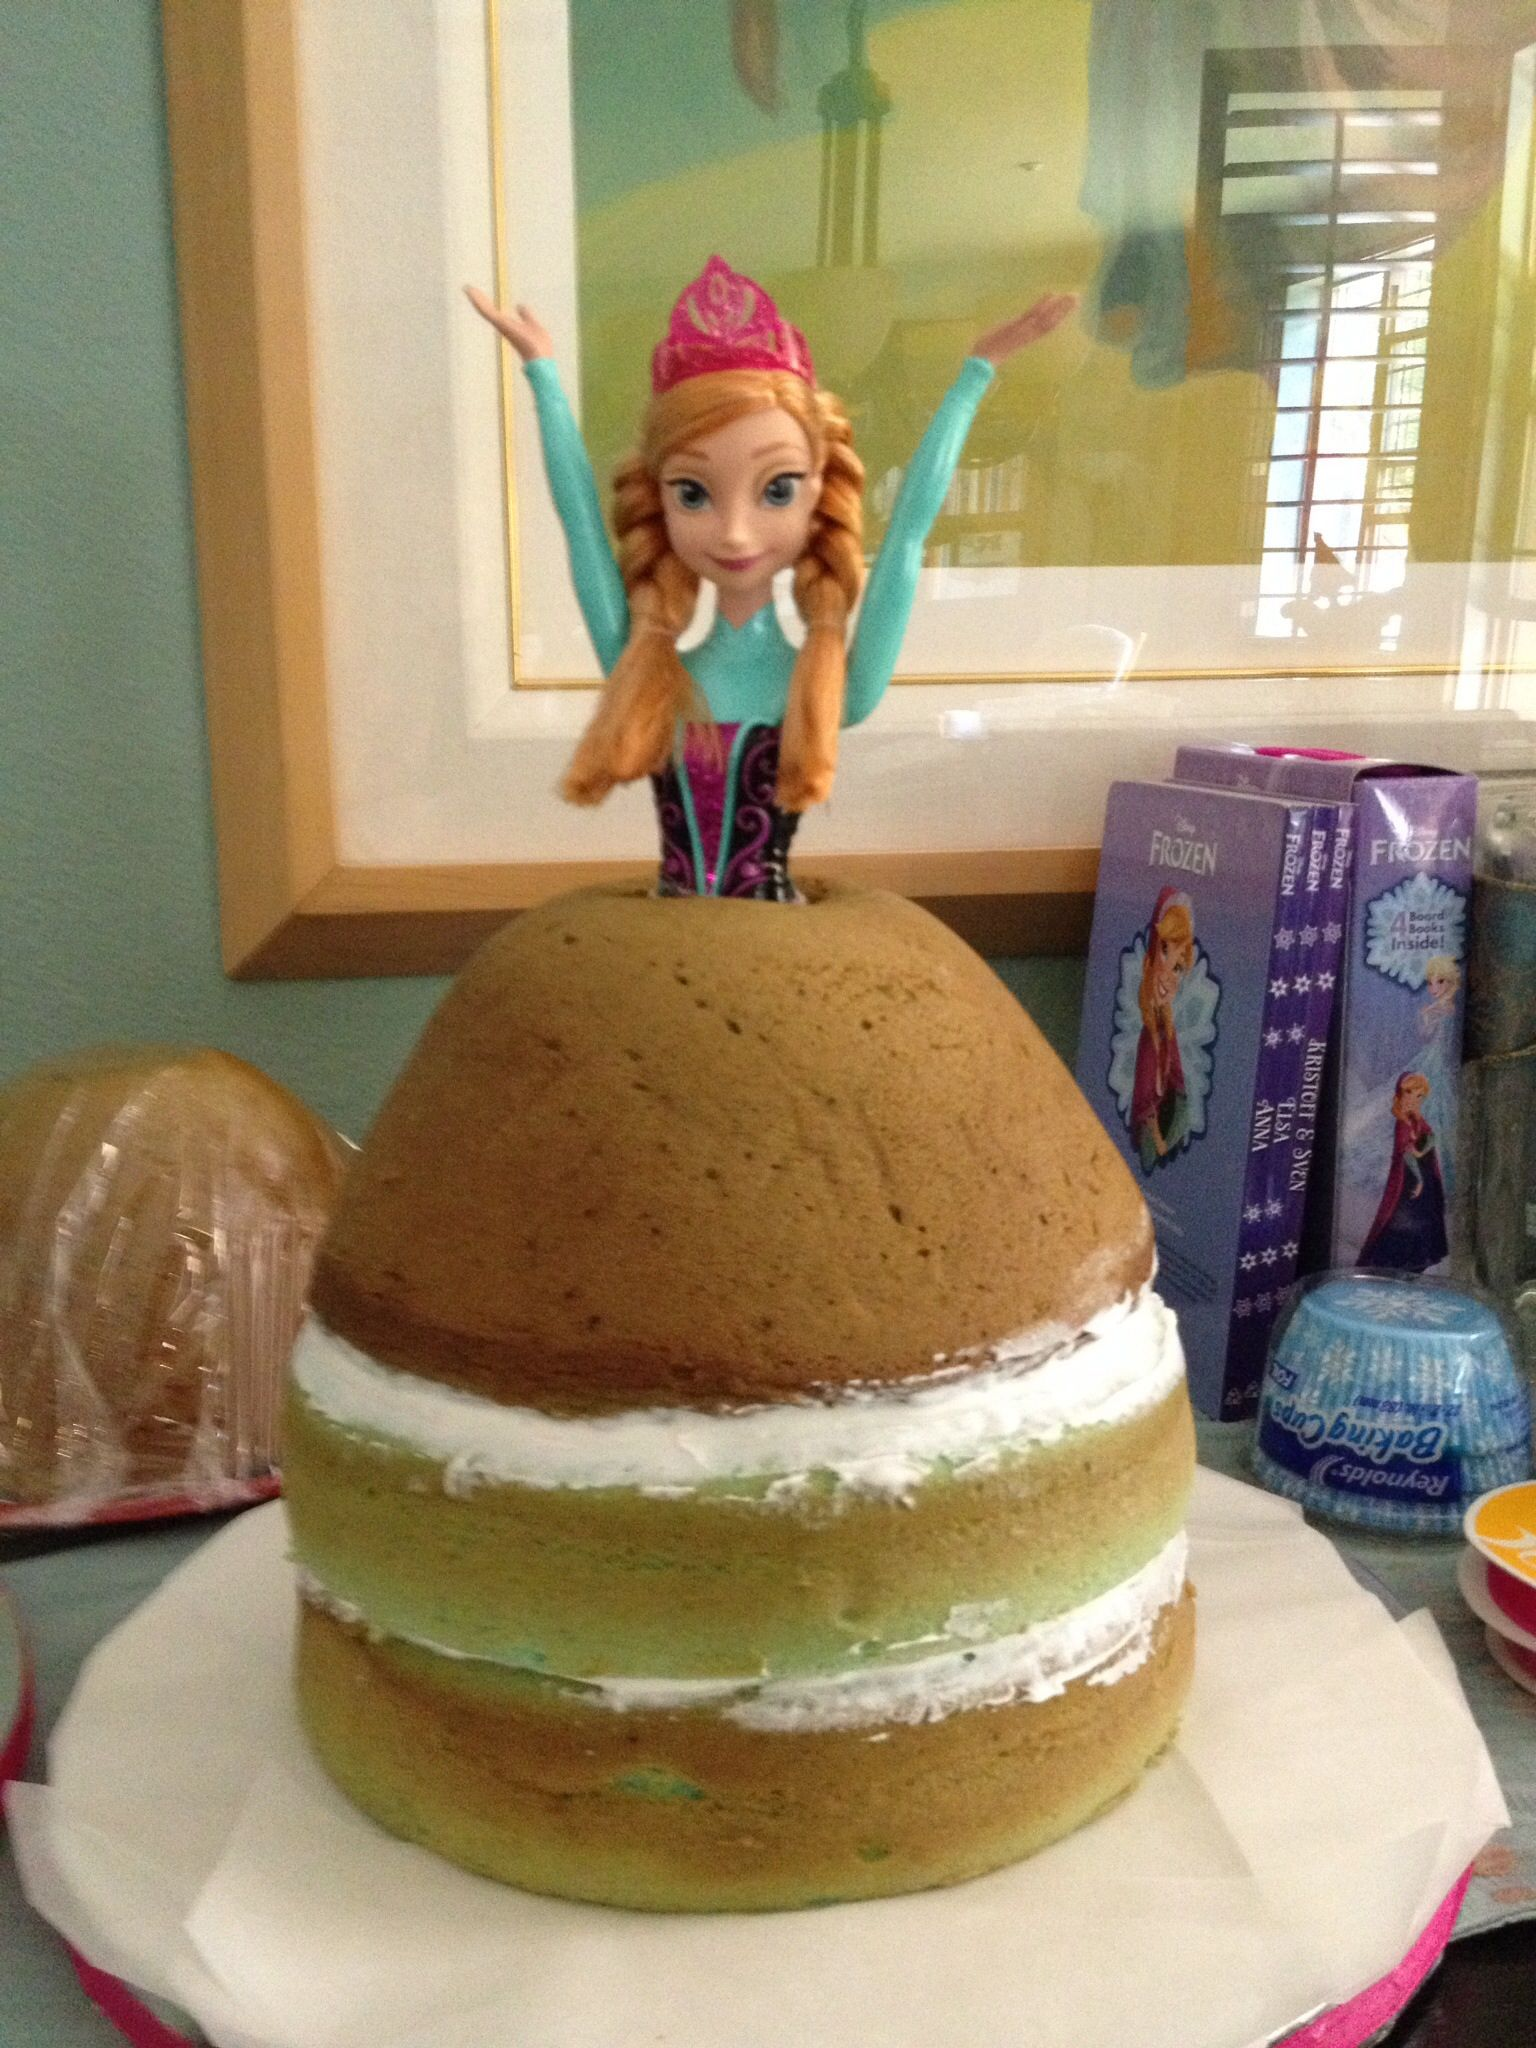 Decoration Of Doll Cake : Anna doll cake before decorating. (For Ava, July 2014 by ...